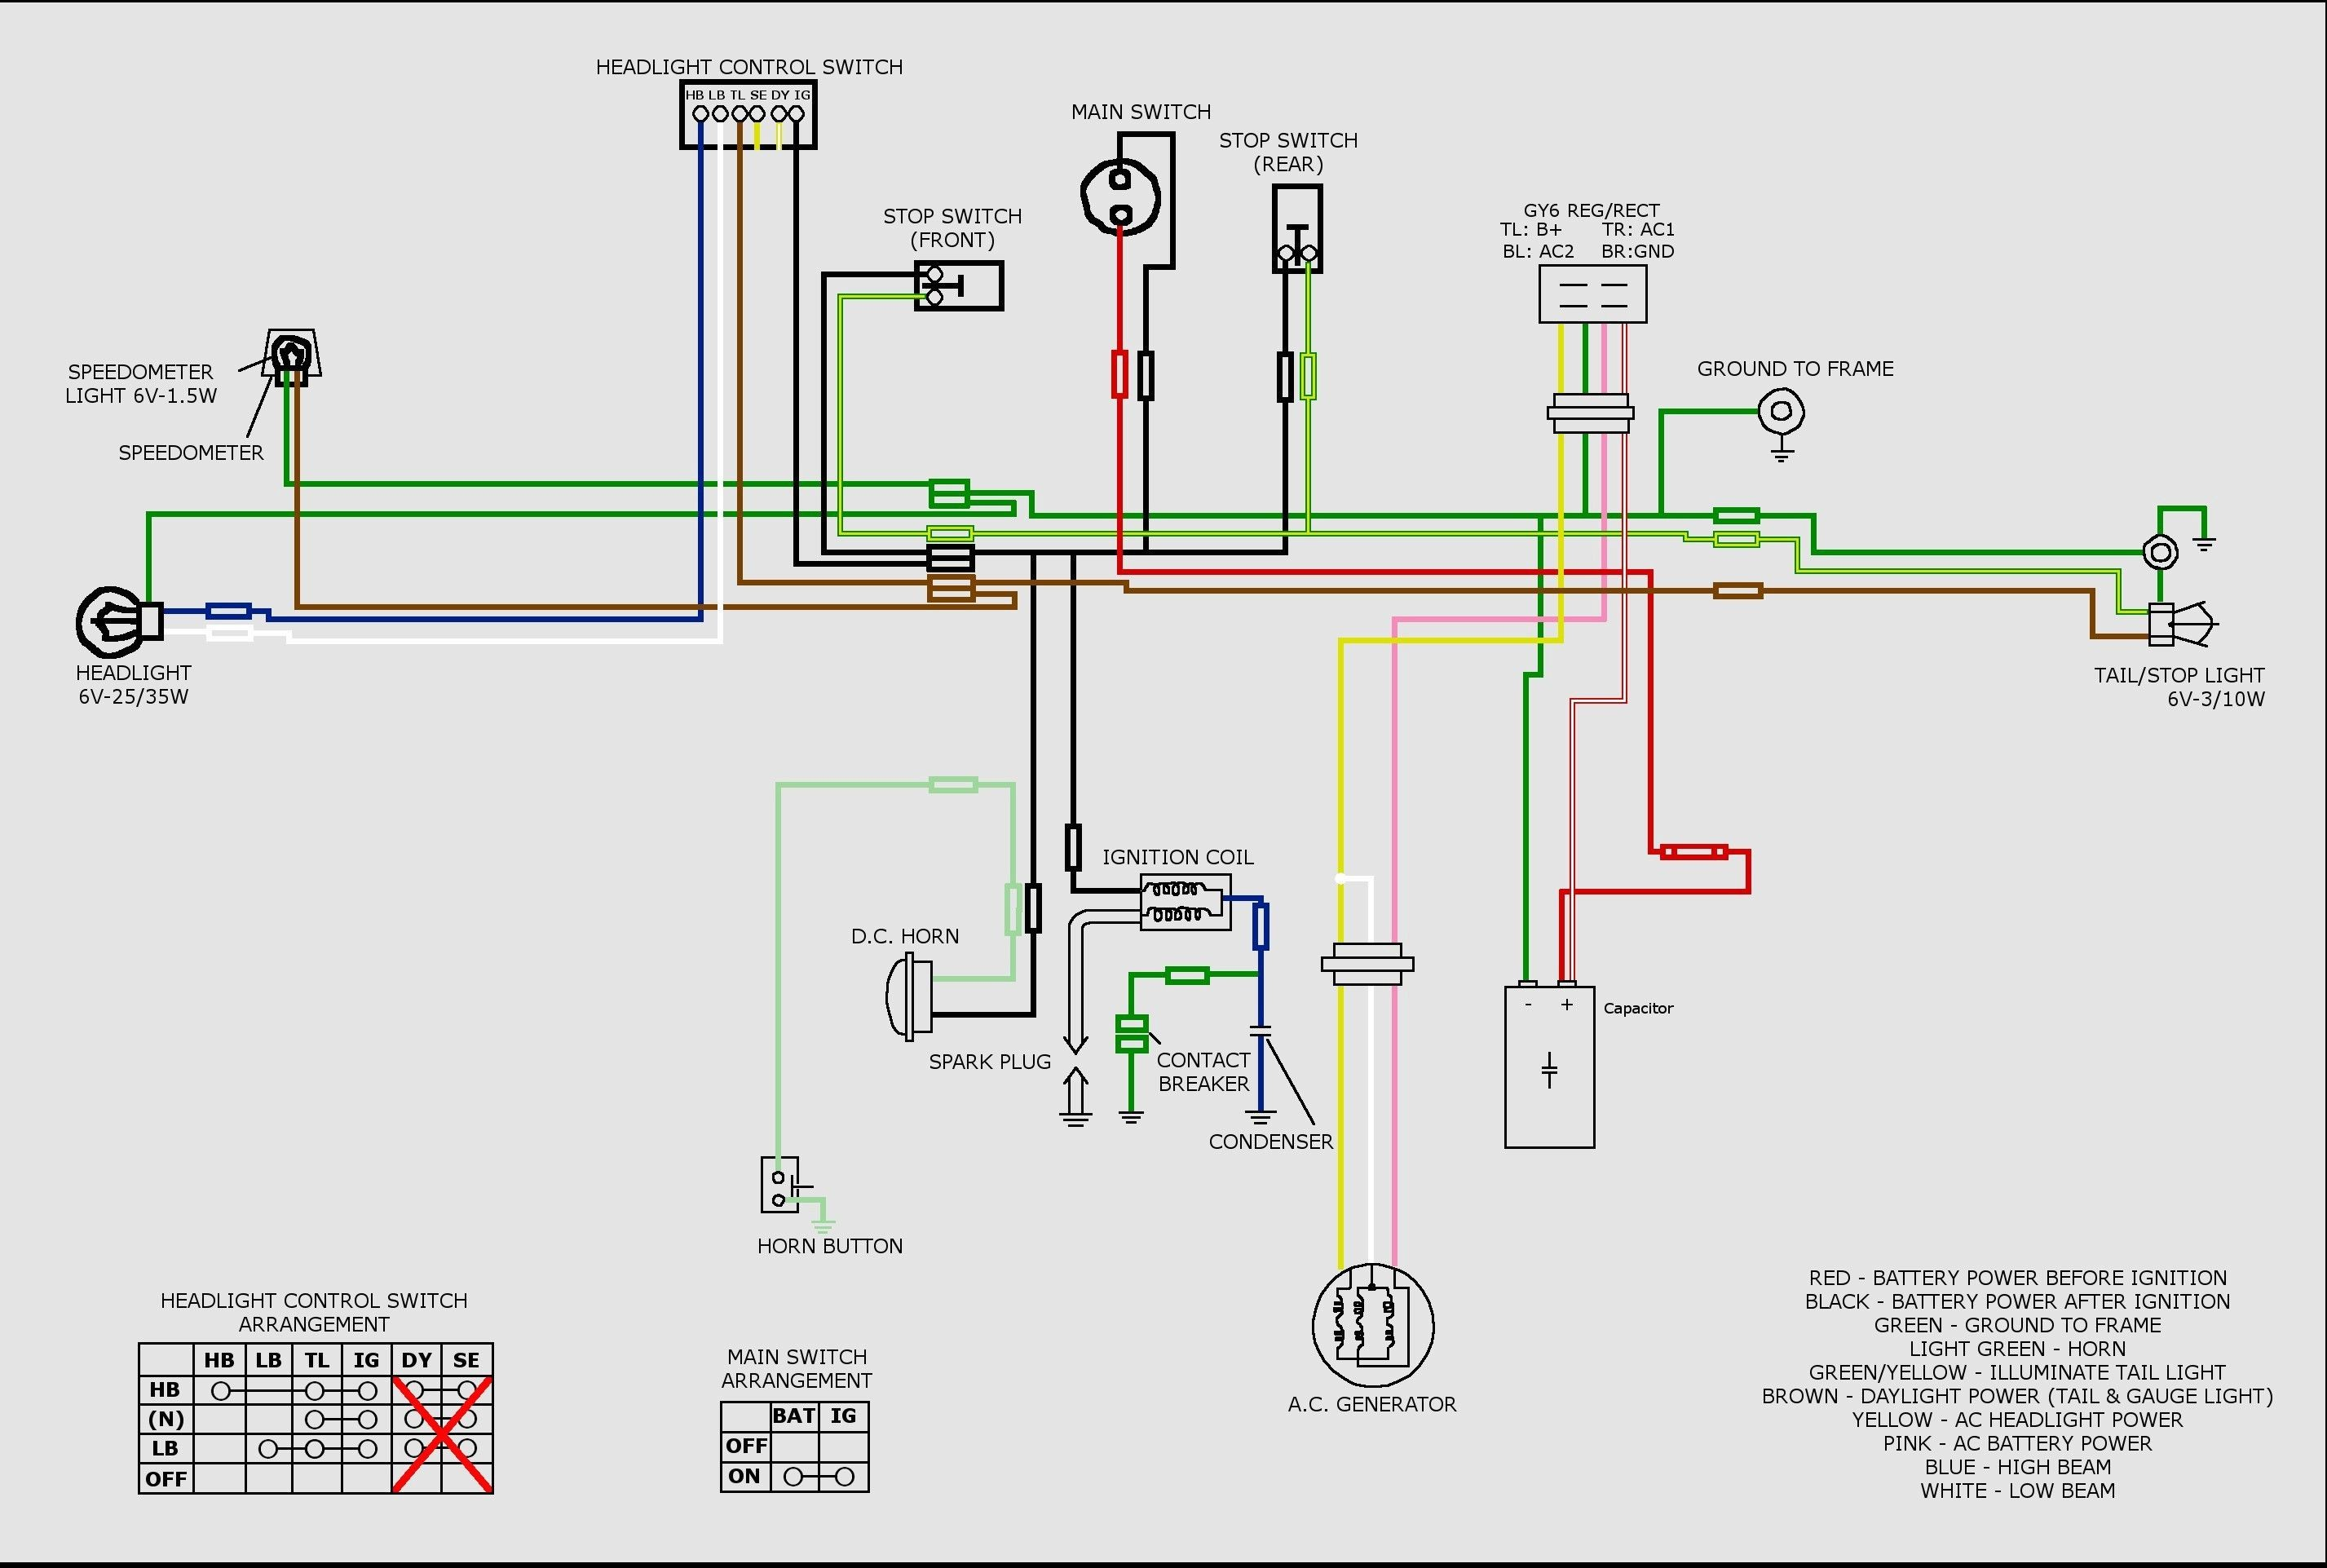 Engine Breakdown Diagram Qmb139 Engine Diagram Wiring Diagram forward Of Engine Breakdown Diagram Energies Free Full Text